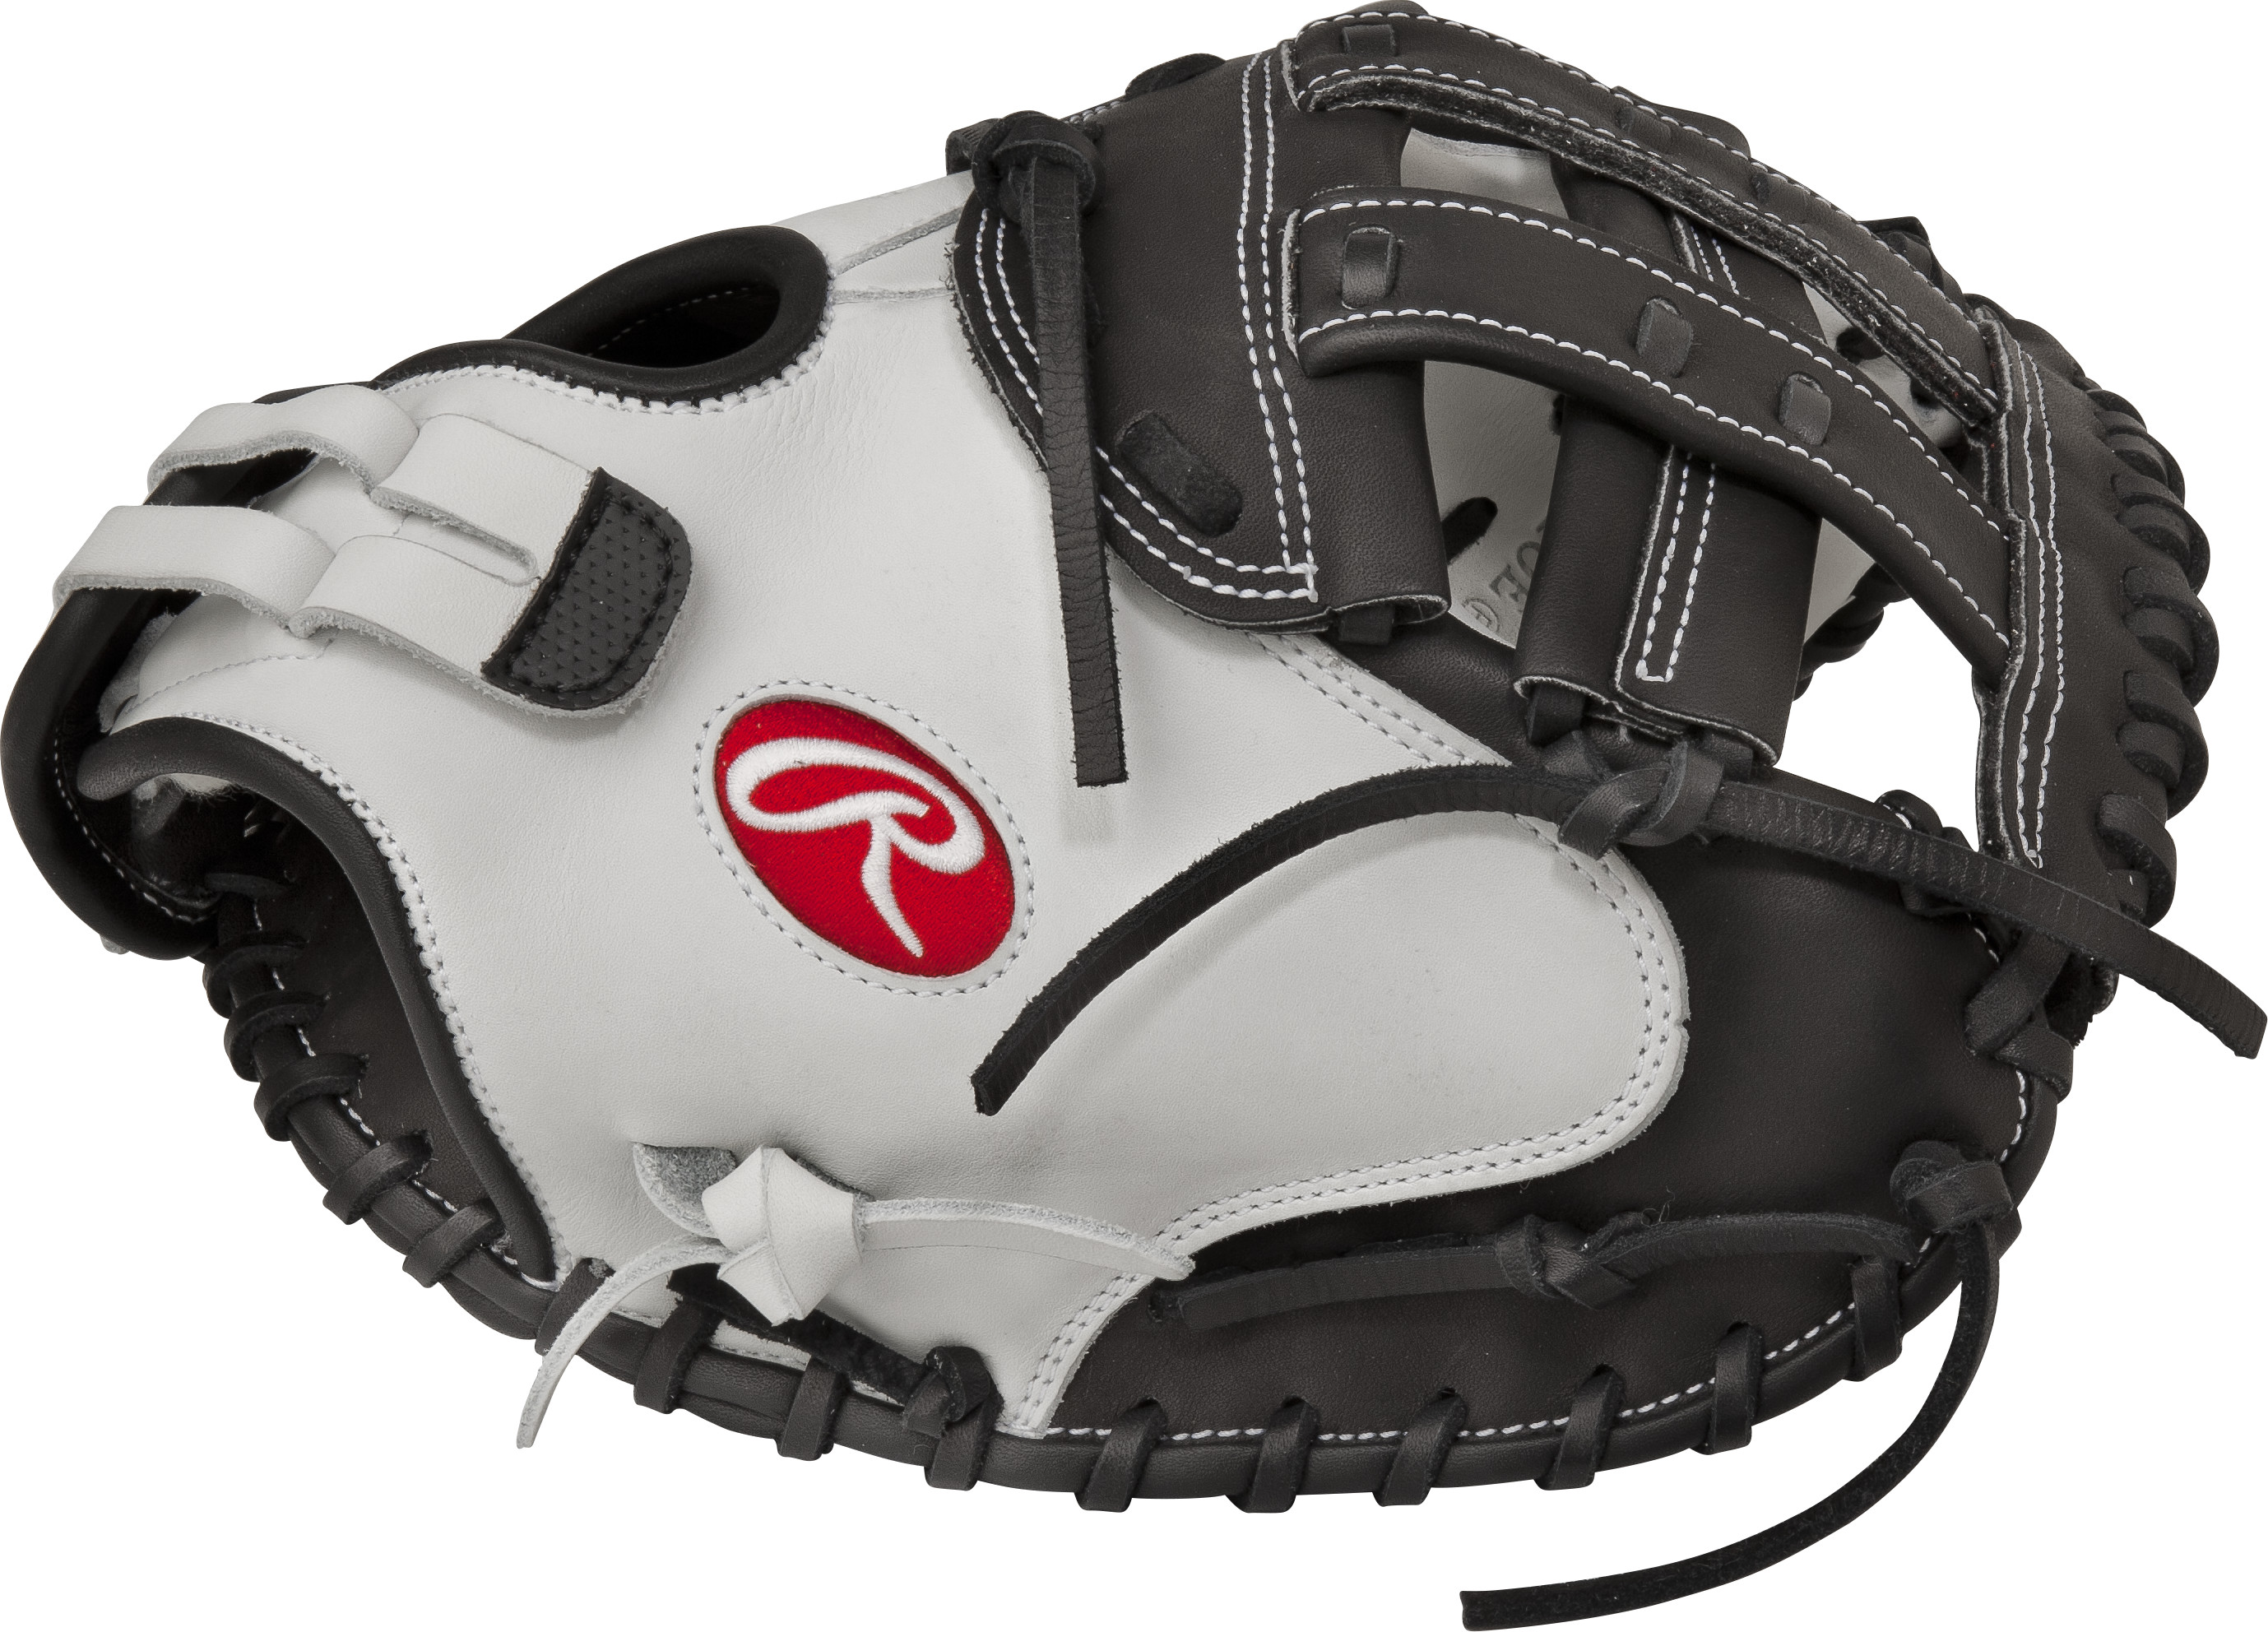 http://www.bestbatdeals.com/images/gloves/rawlings/RLACM33_thumb.jpg